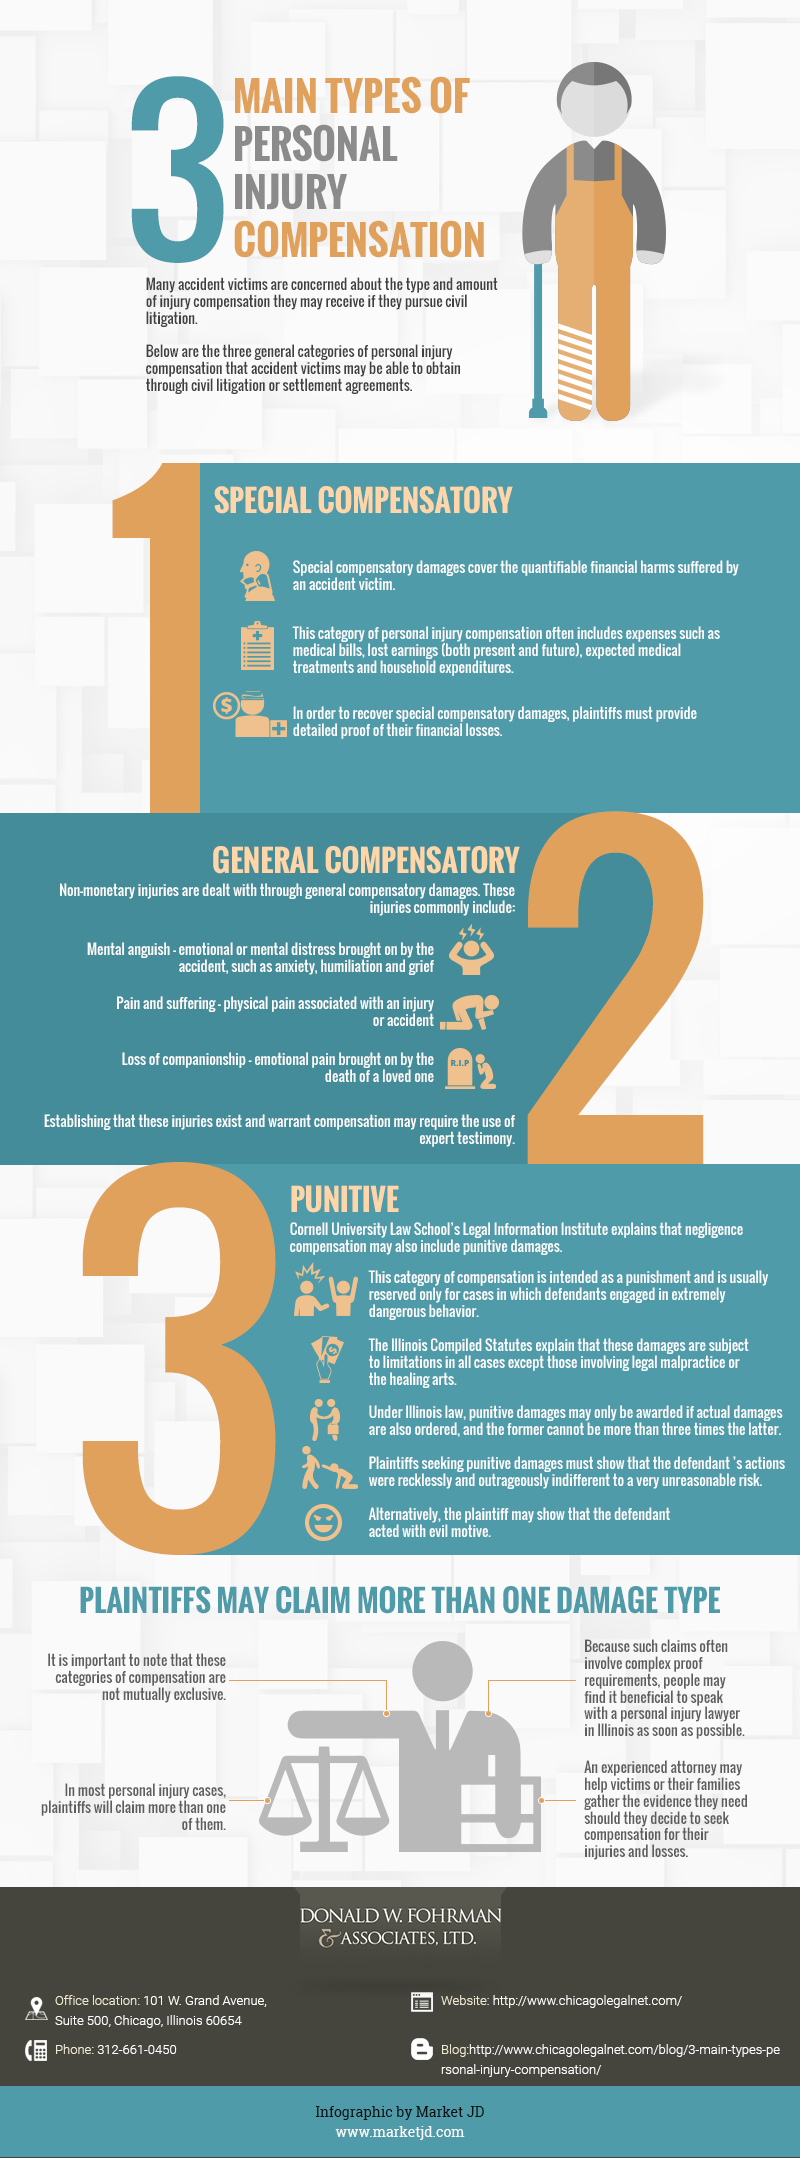 Main types of Personal Injury Compensation